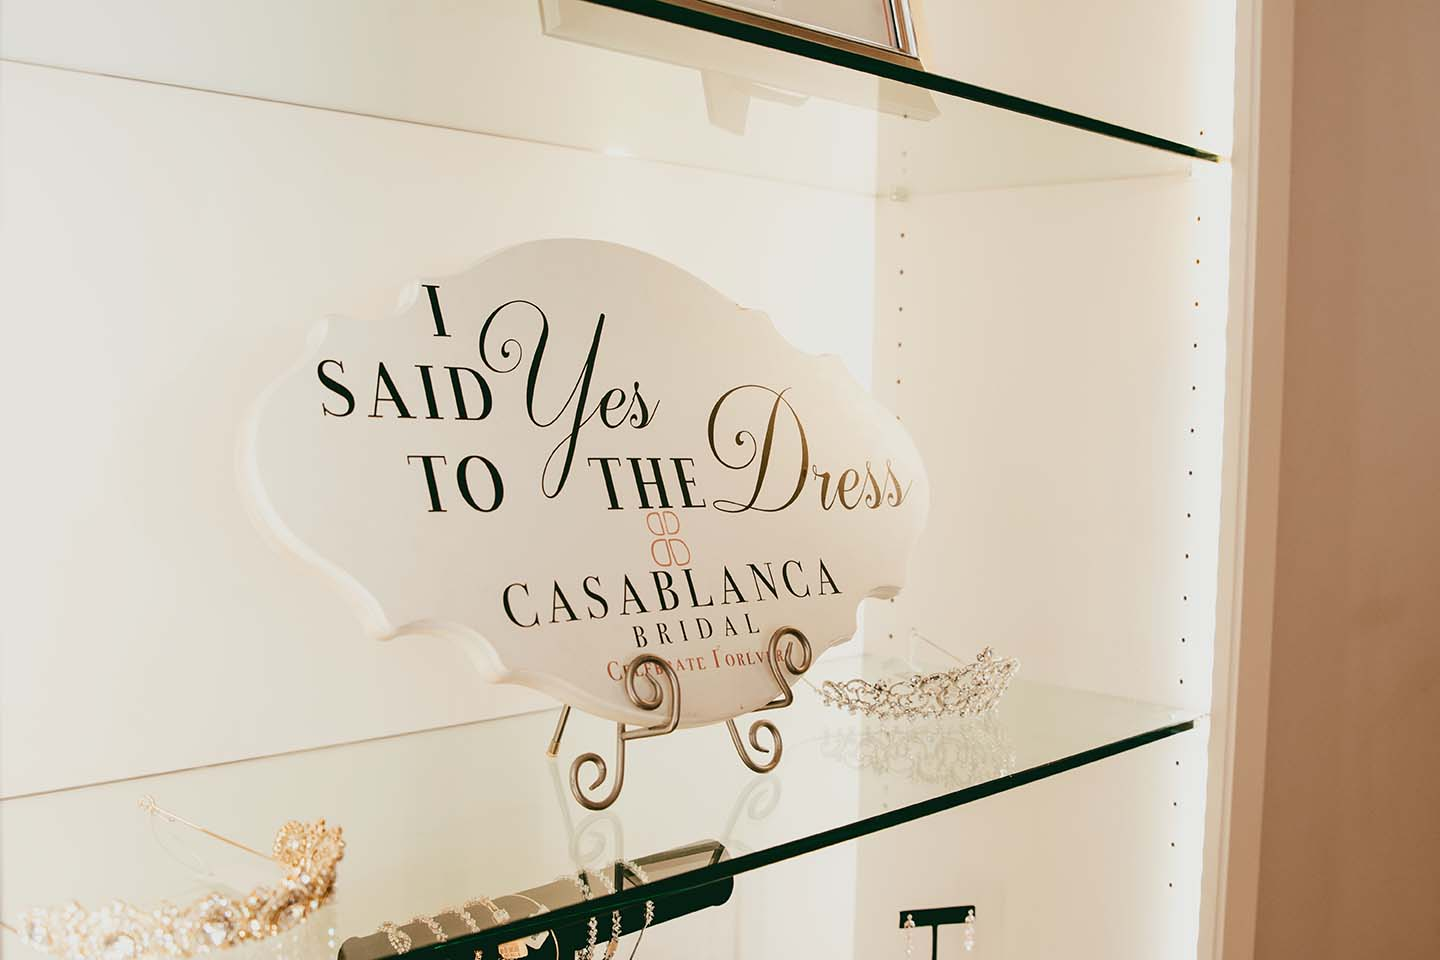 I SAID Yes TO THE Dress. Casablanca Bridal